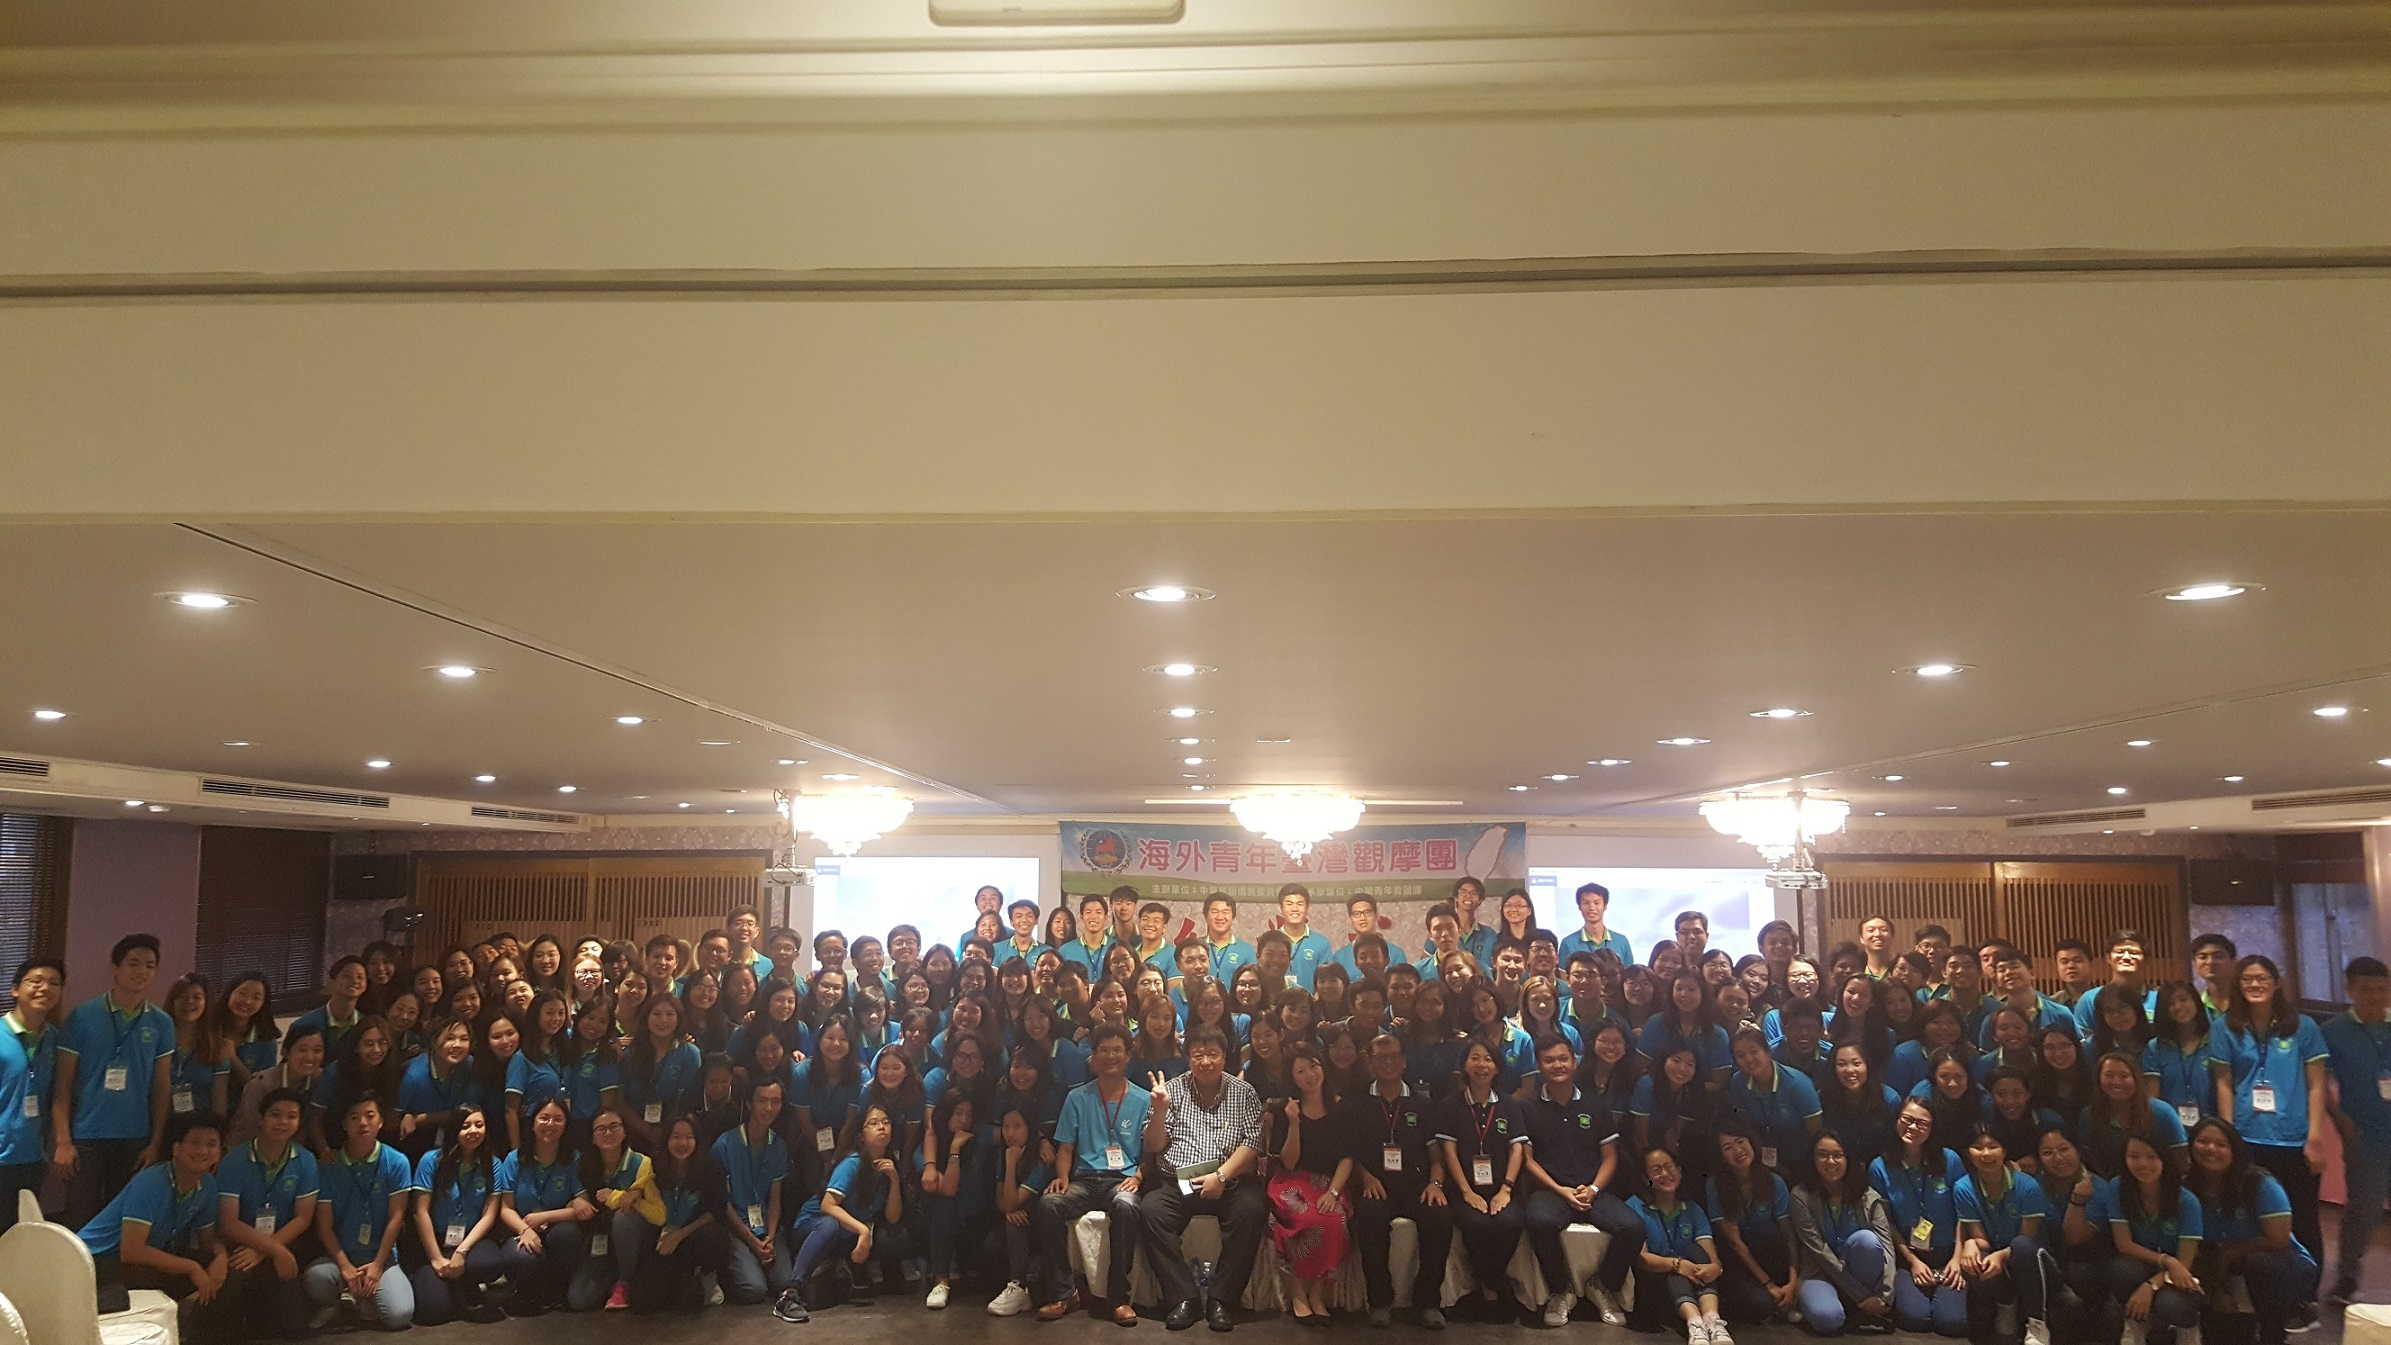 149 students happily came to Taiwan to attend the 2019 OCAC Overseas Youth Taiwan Study Tour Session 3 -Philippines